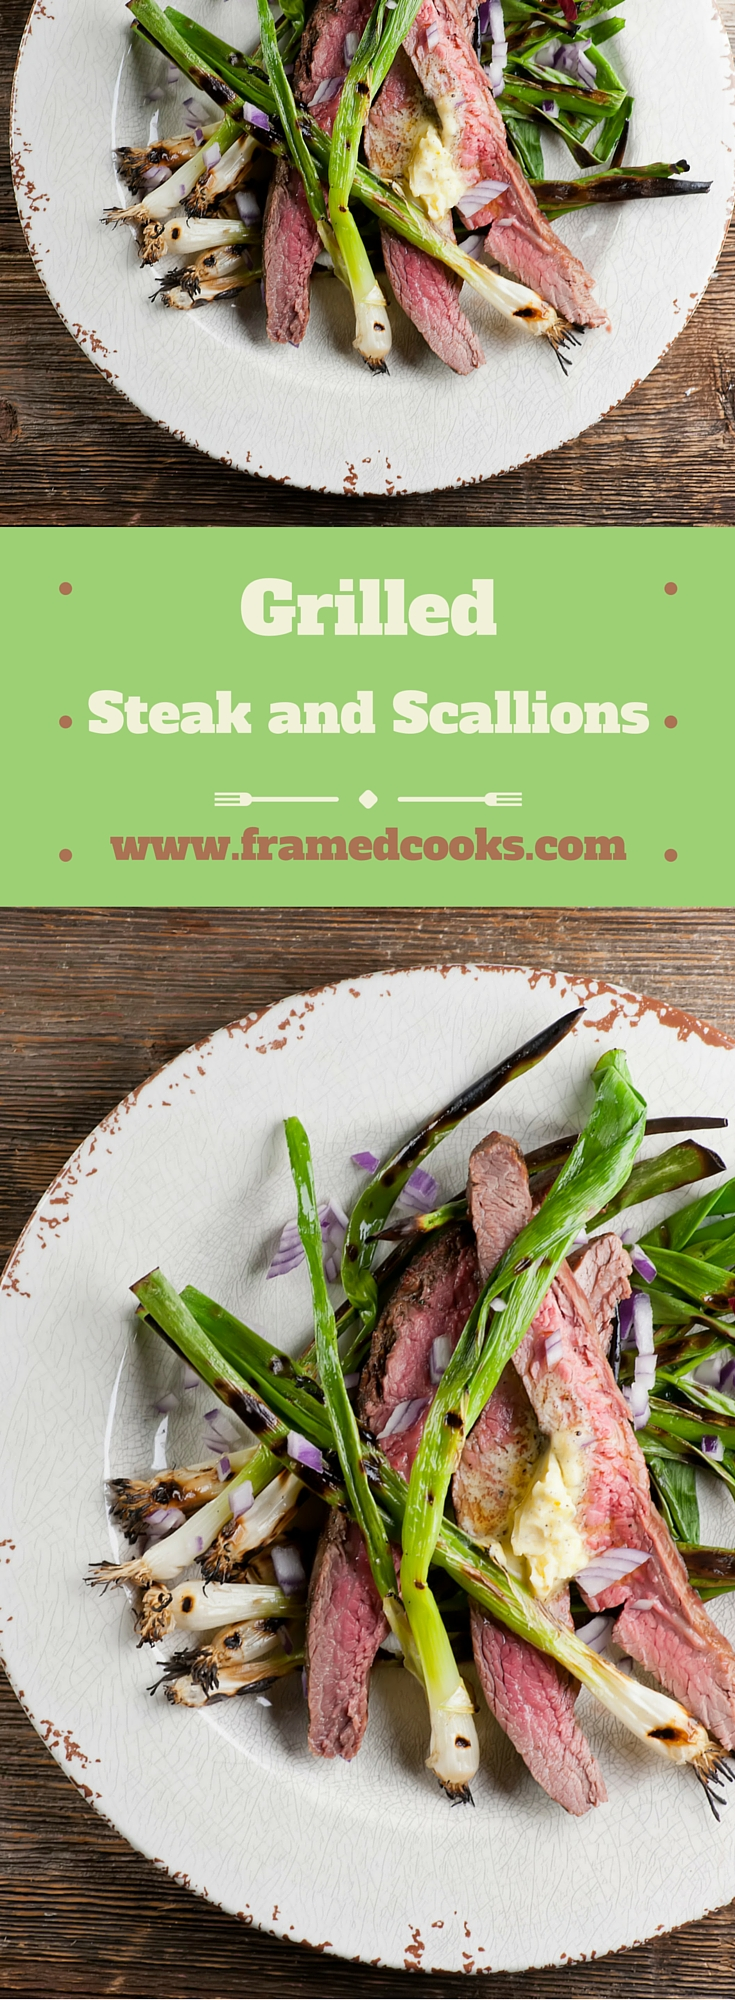 This recipe for grilled steak and scallions is as easy as tossing a flank steak and fresh scallions on the grill and serving it up. A perfect summer supper!